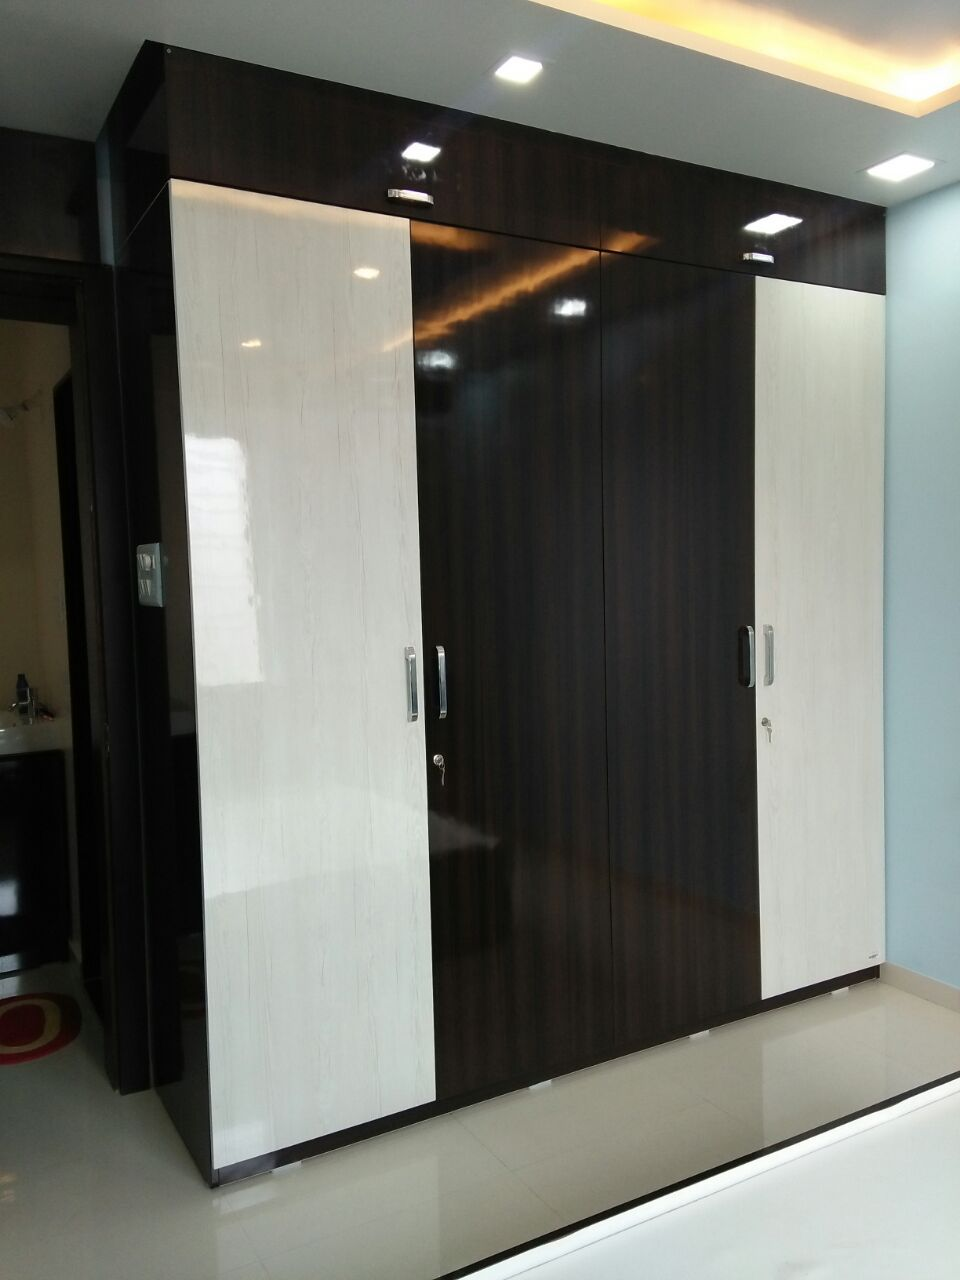 This Wardrobe Design And Product Made By Loginwood Good